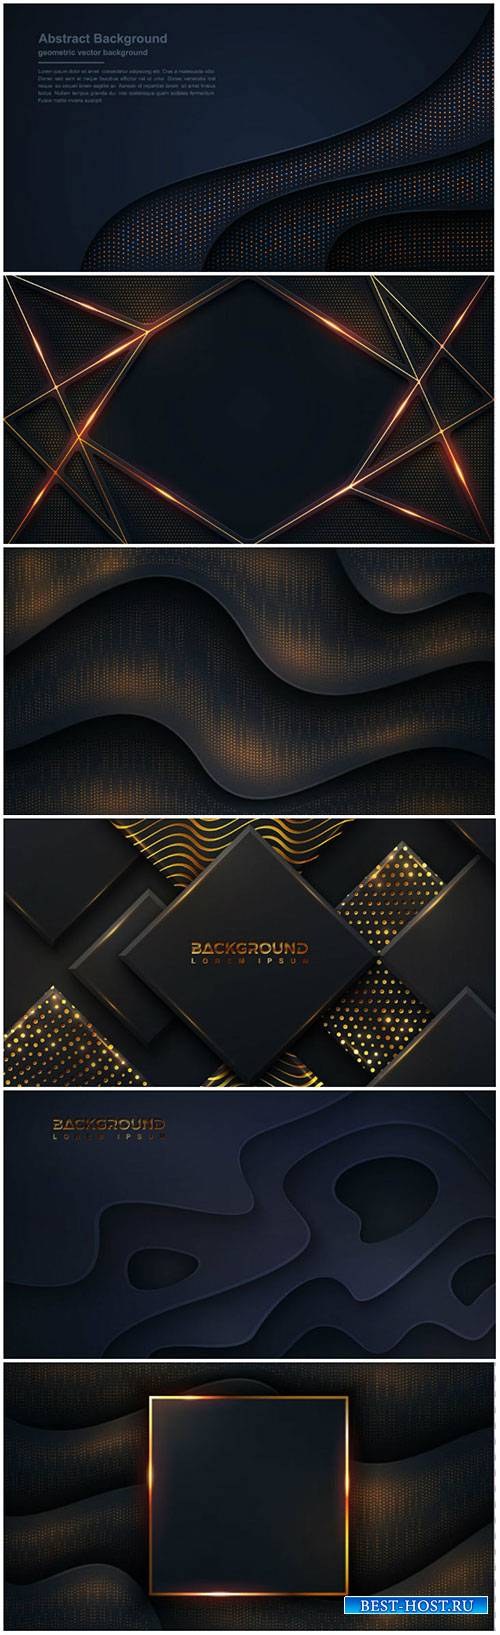 Luxury dark background textured and wavy with a combination of shining dots